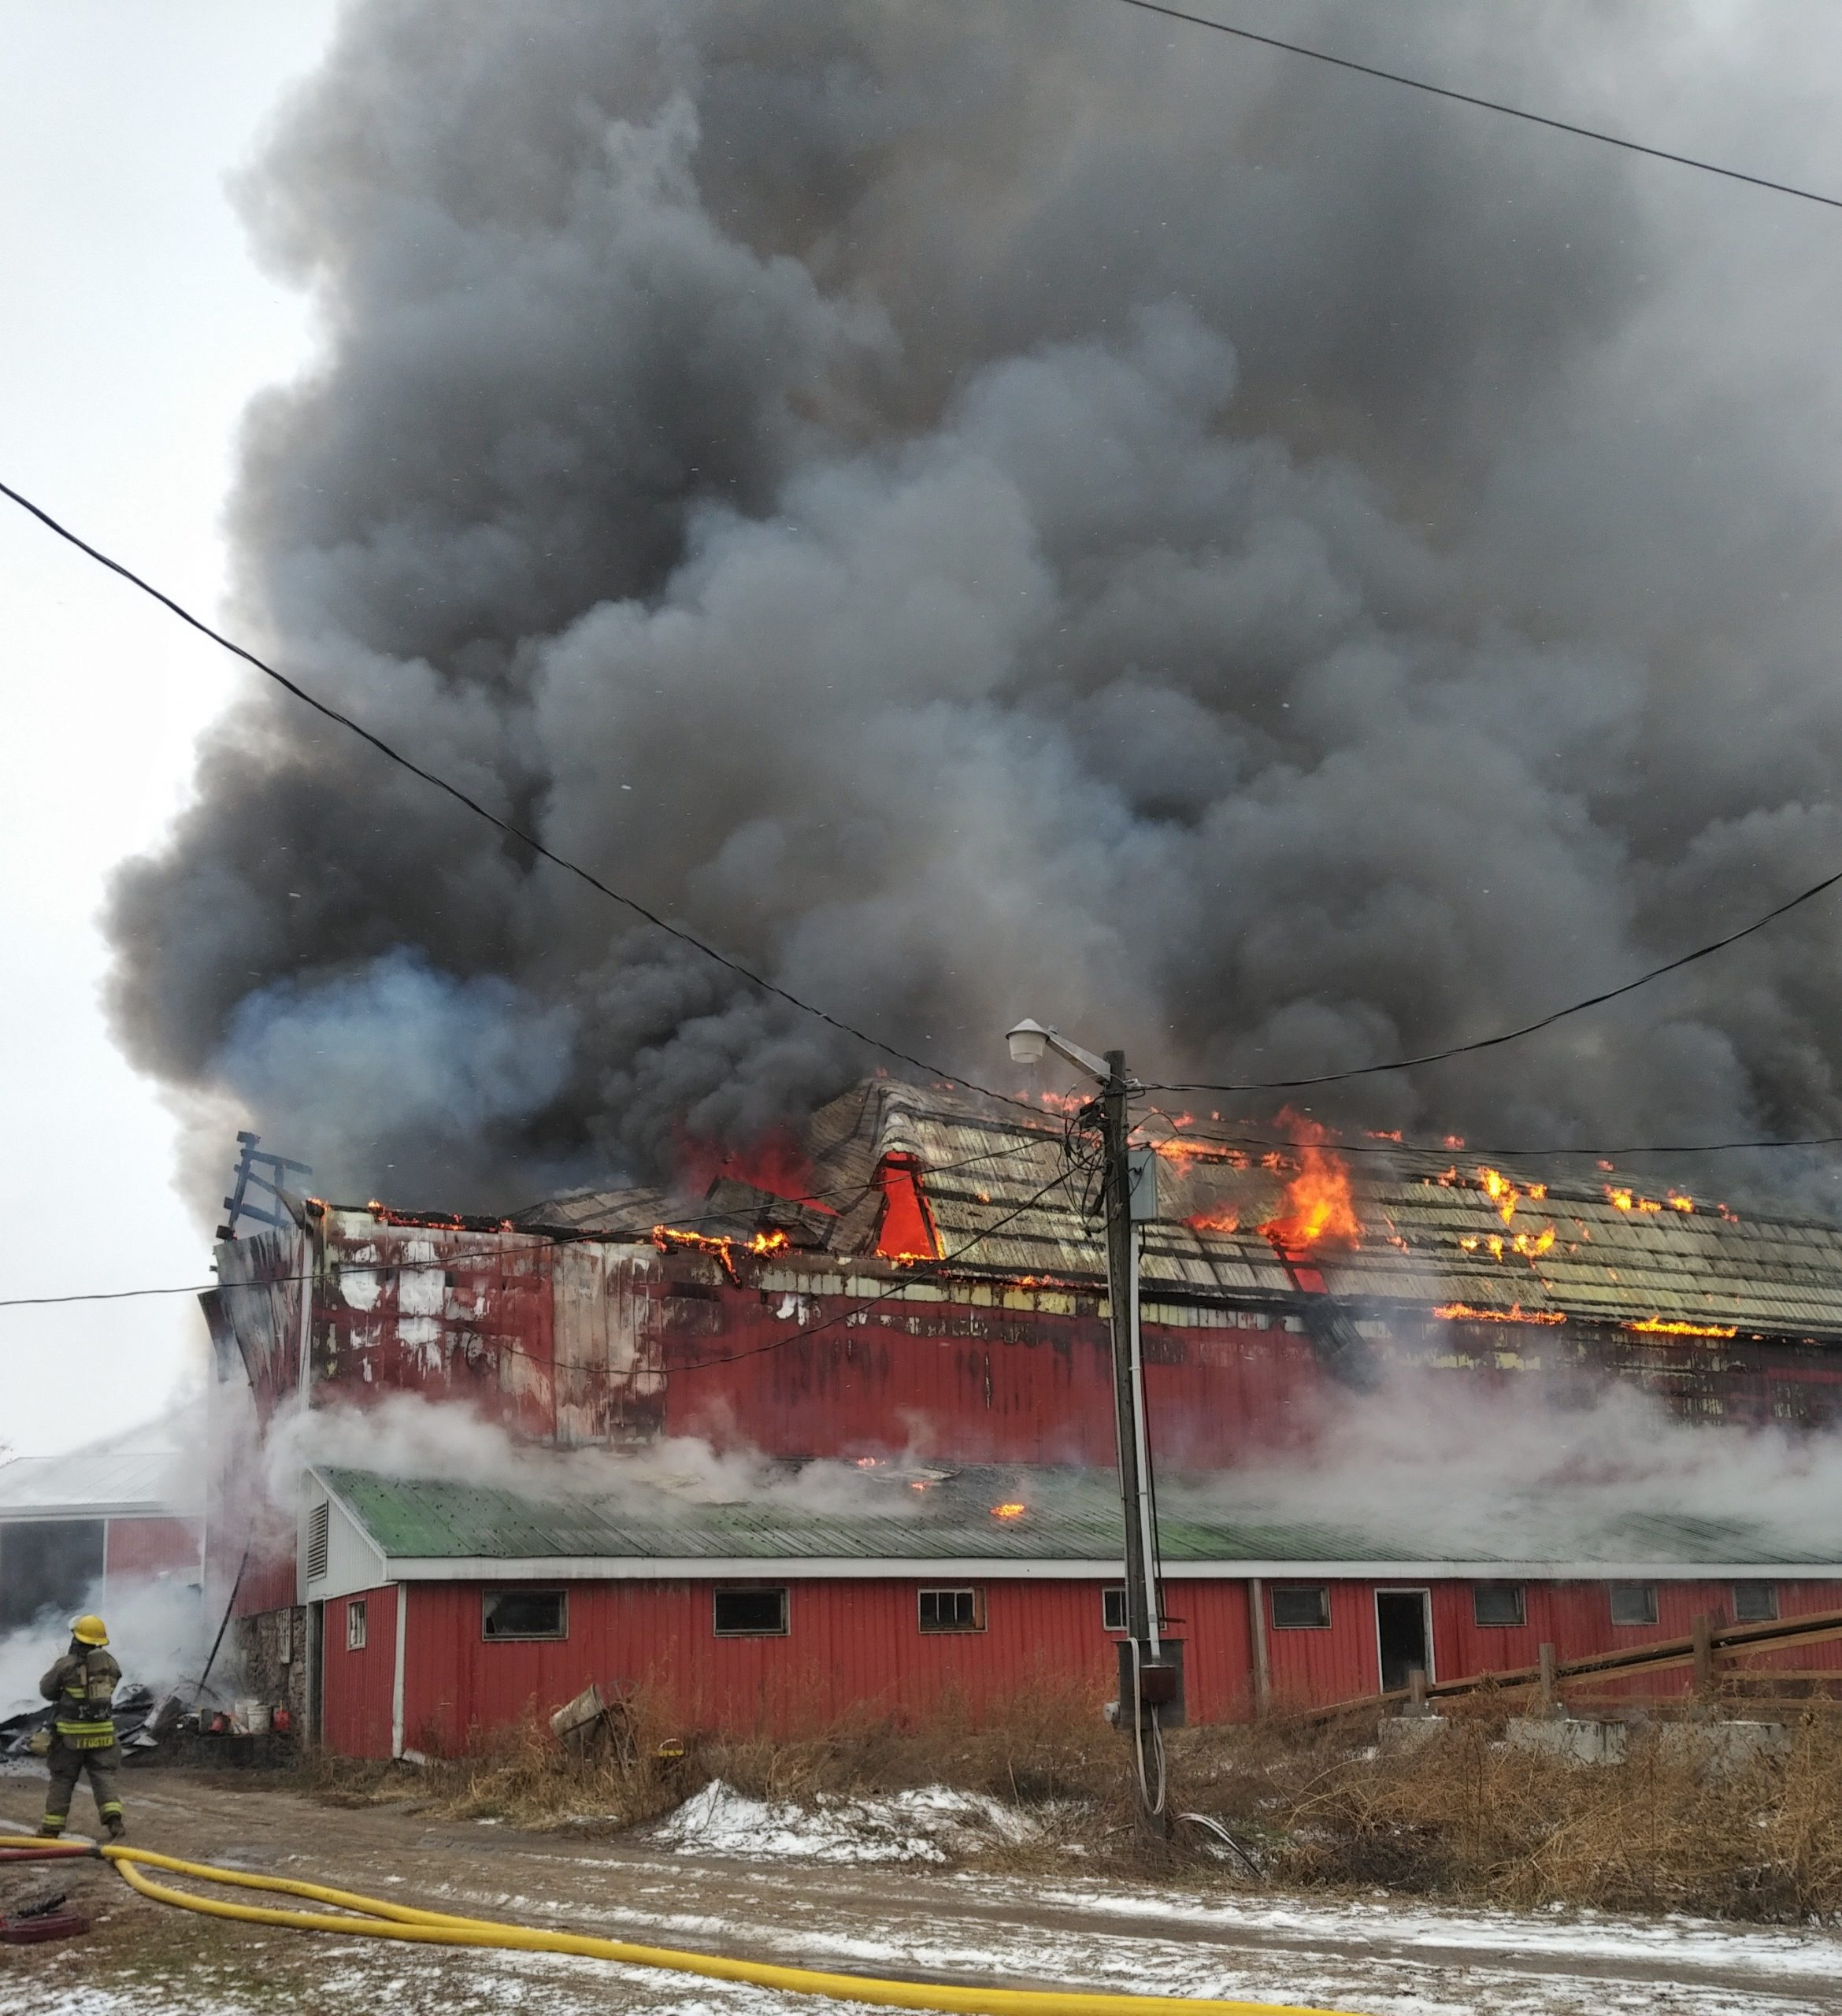 UPDATED: Quinte West firefighters battling barn blaze